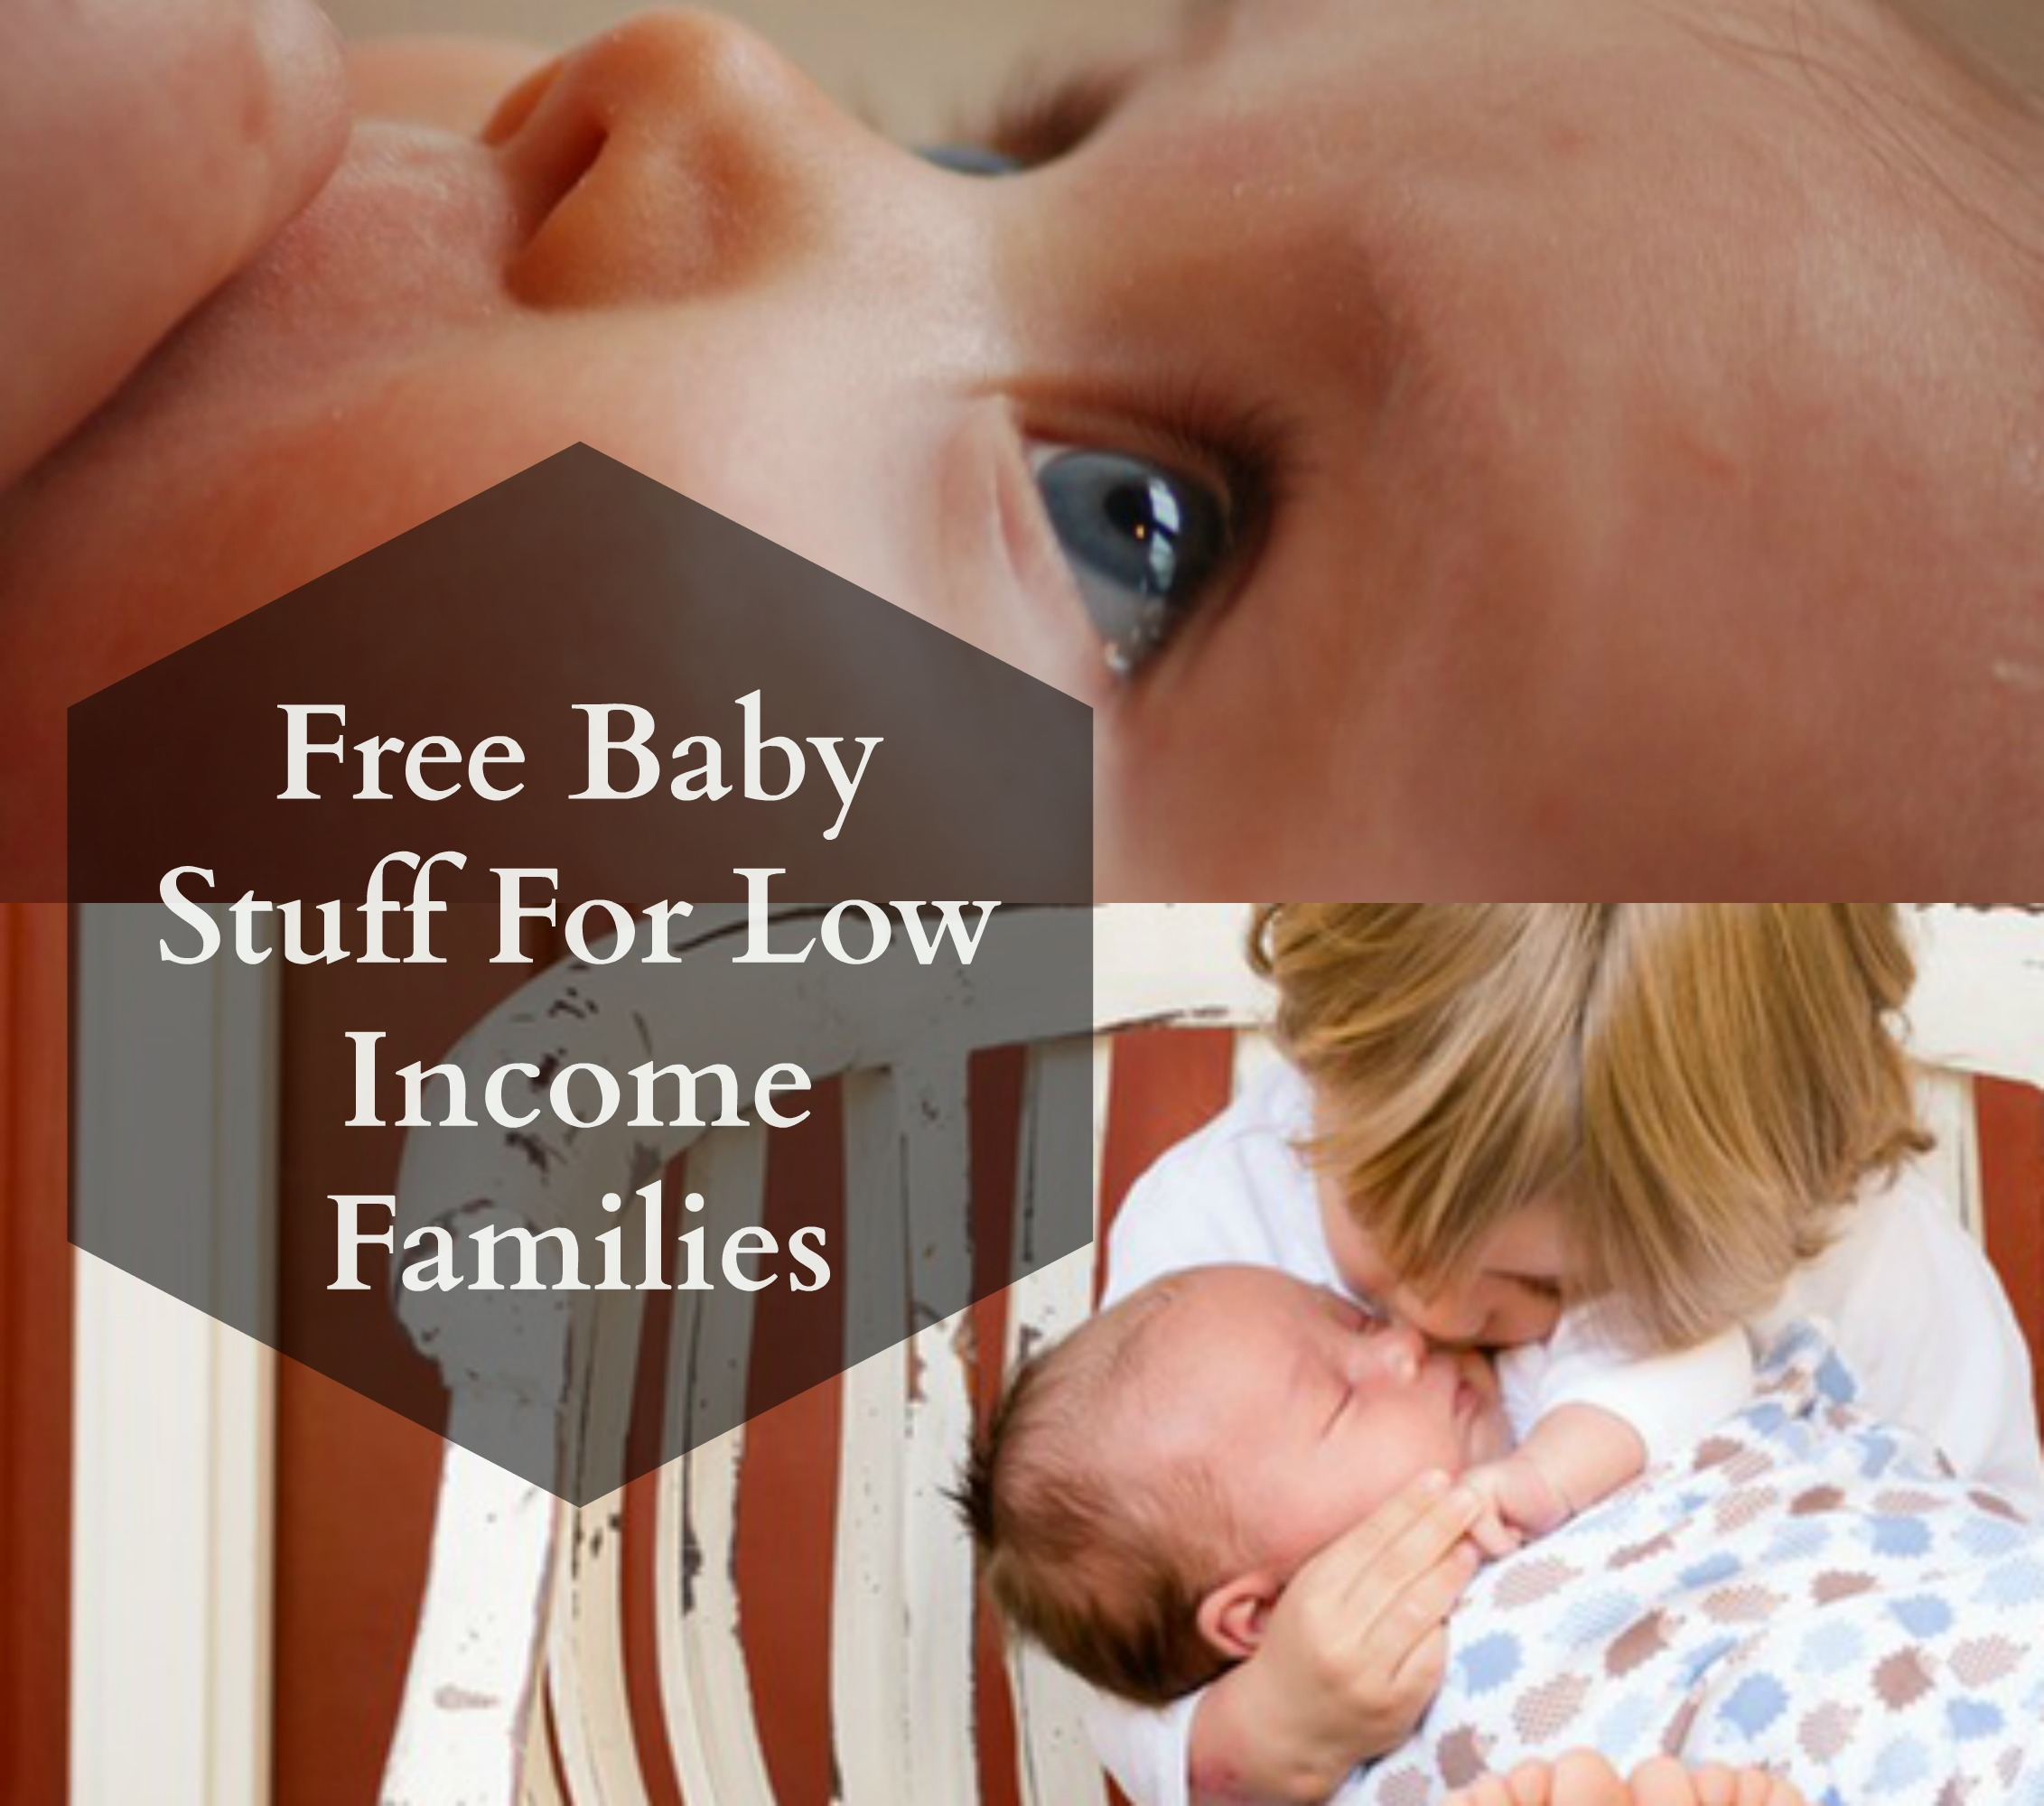 Free Baby Stuff For Low Income Families